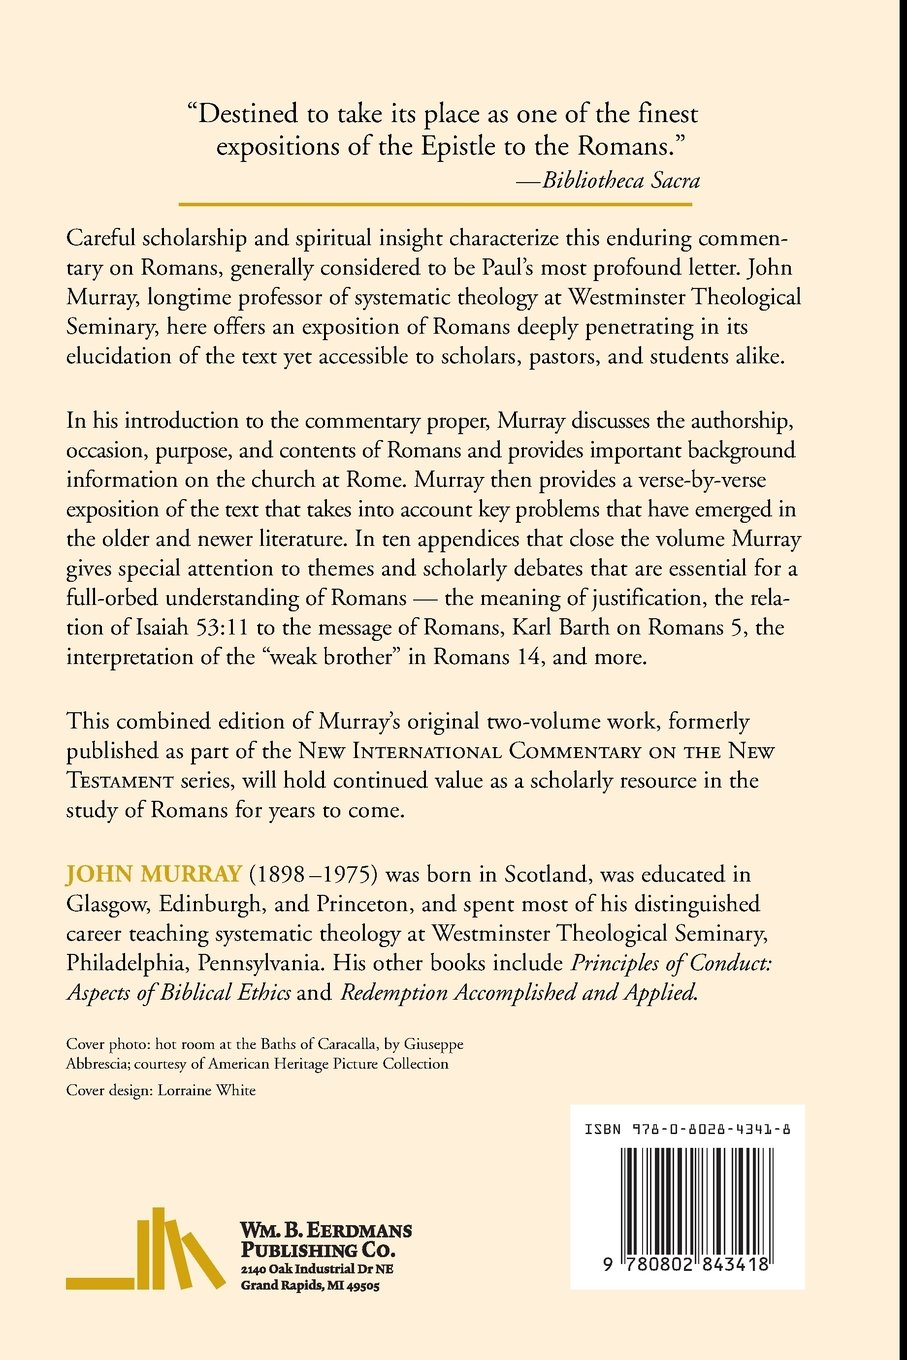 Epistle to the romans new testament commentary john murray epistle to the romans new testament commentary john murray 9780802843418 amazon books sciox Gallery